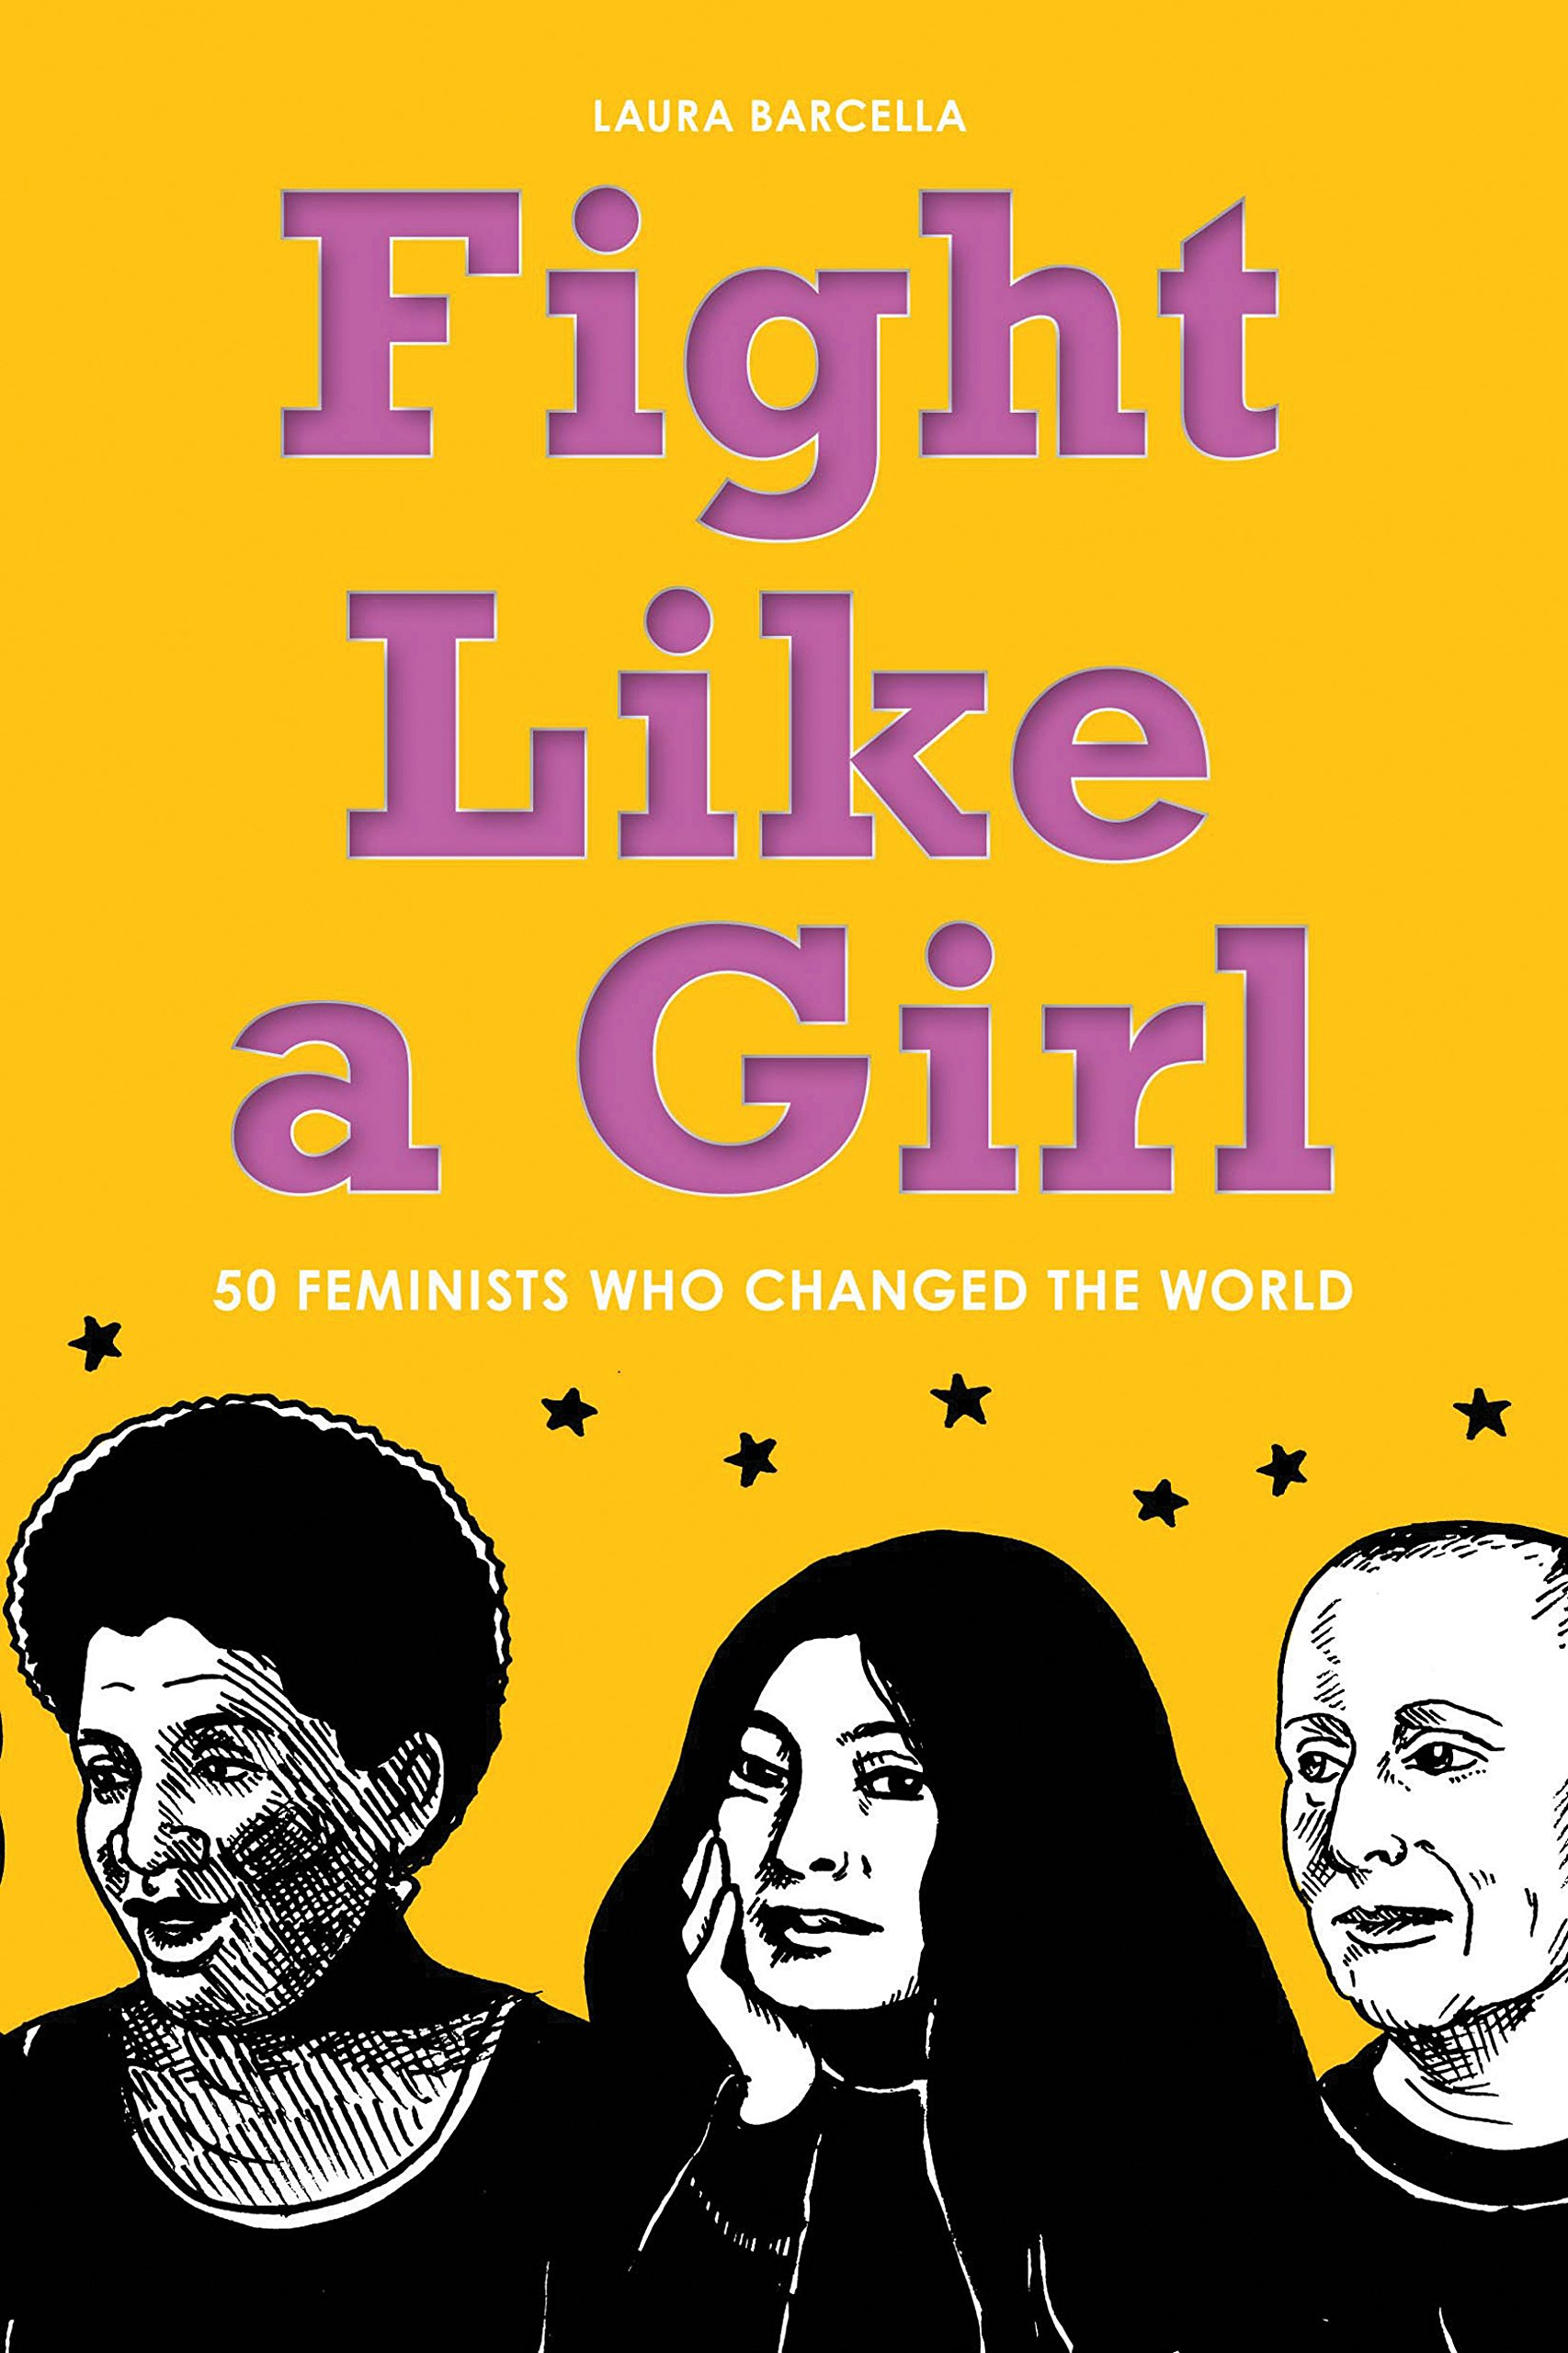 fight like a girl - 50 Feminists Who Changed the World(Zest Books, March 2016)